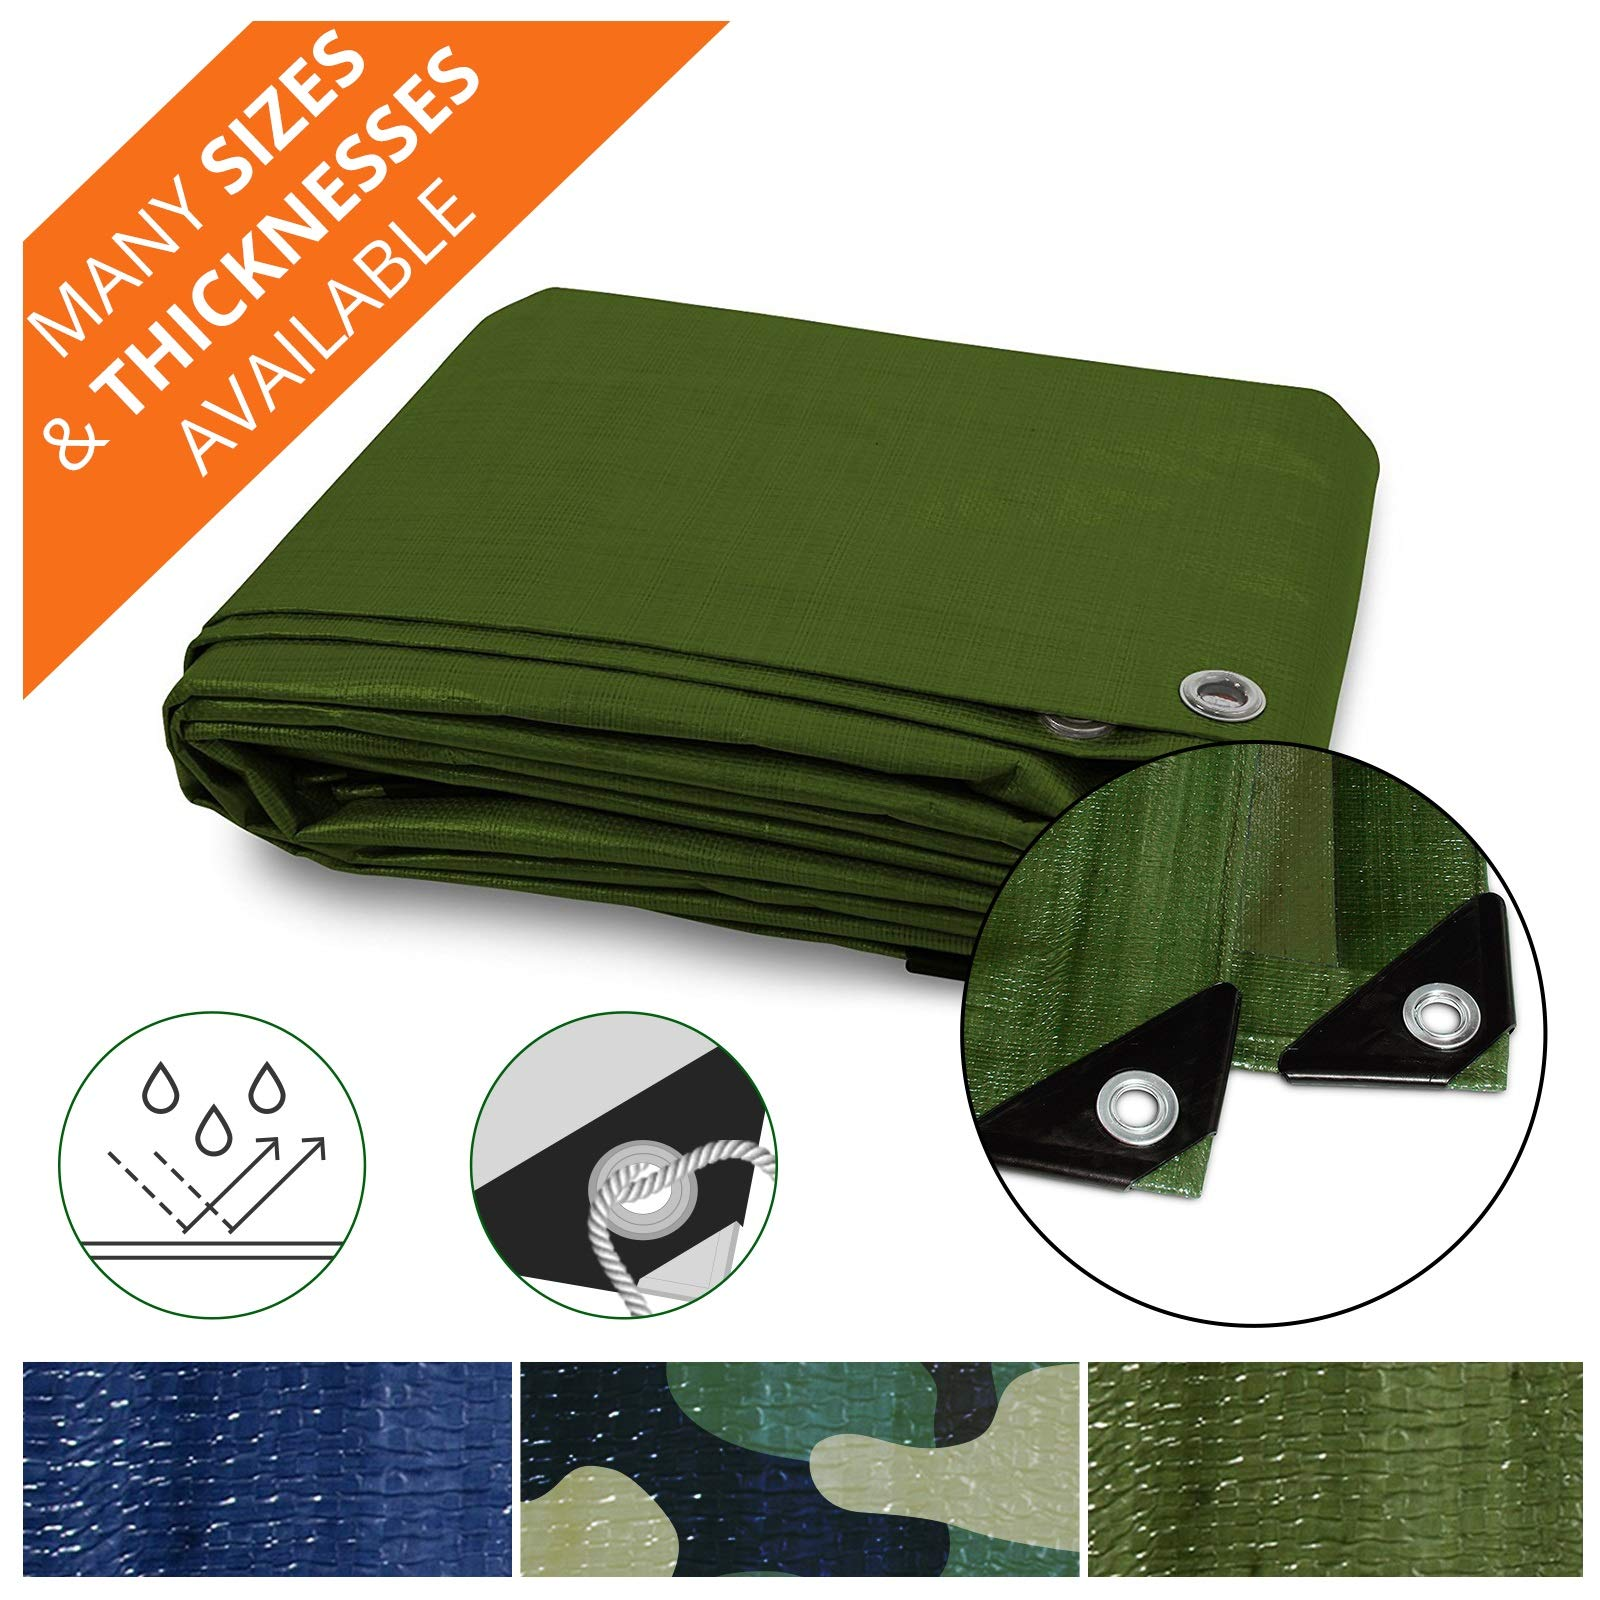 Heavy Duty Tarps | Waterproof Ground Tent Trailer Cover | Multilayered Tarpaulin in Many Sizes and Thicknesses | 15 Mil - Green - 10' x 12' by casa pura